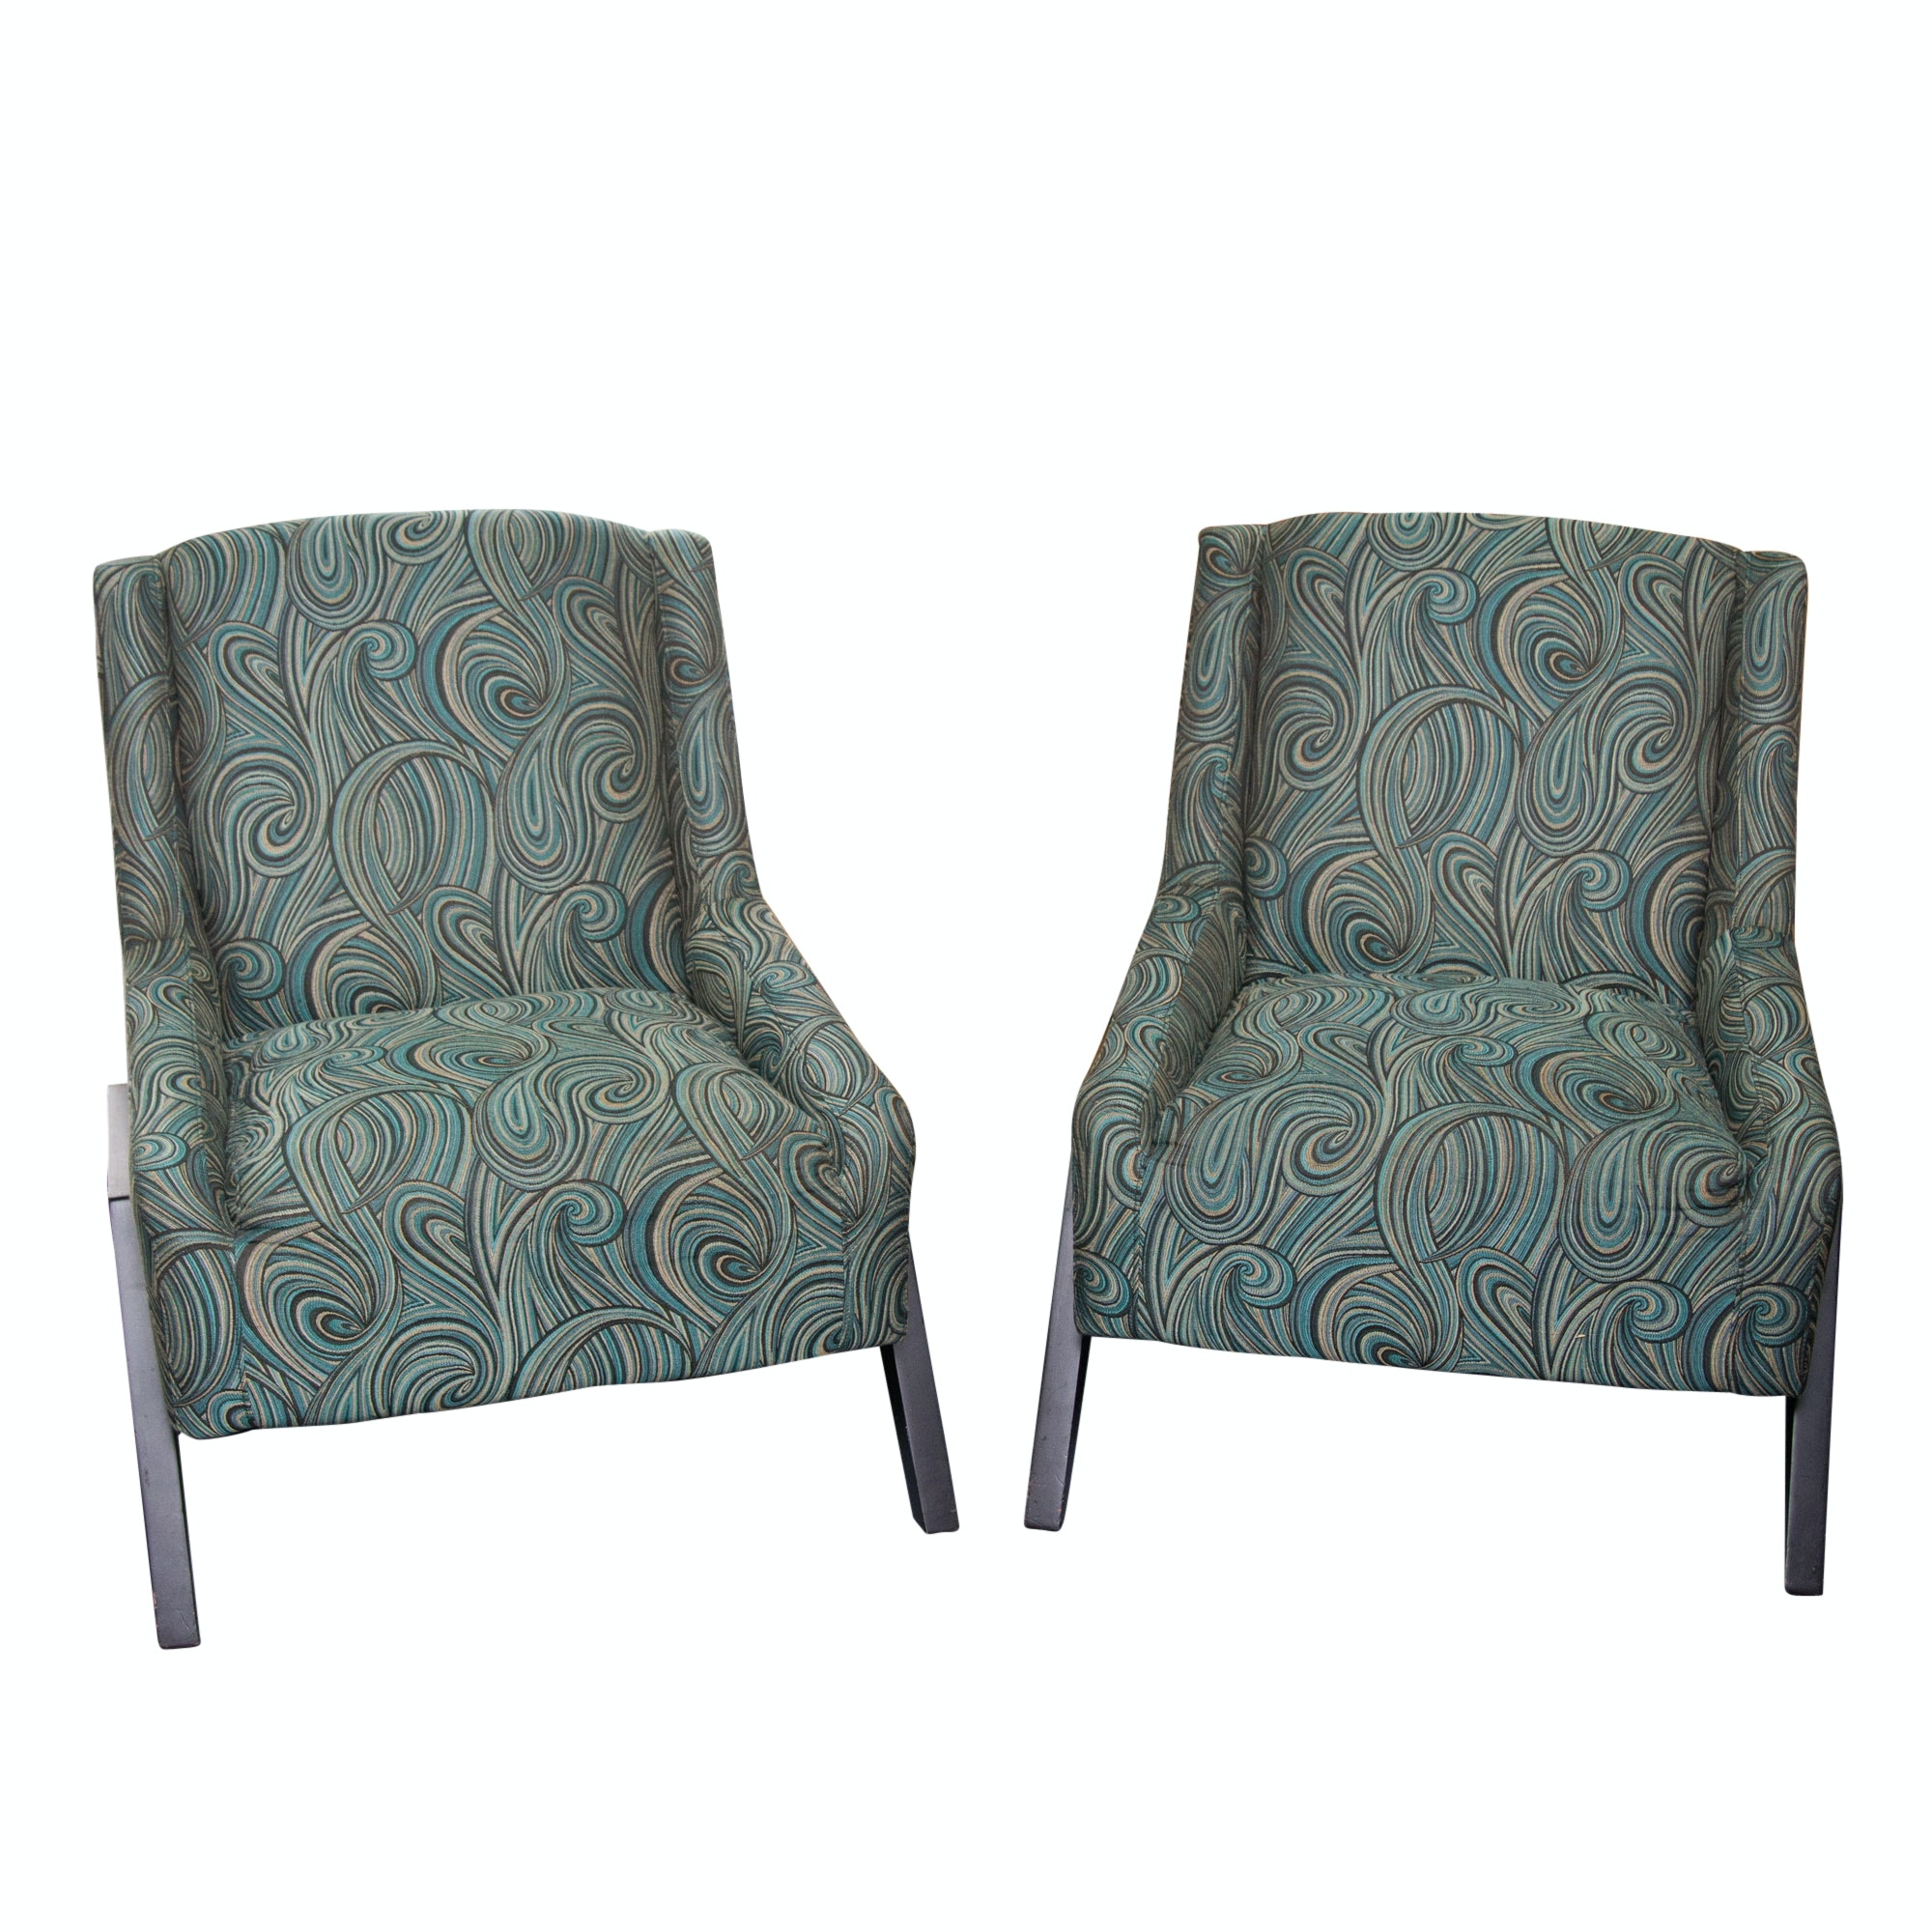 Two Modern Upholstered Armchairs